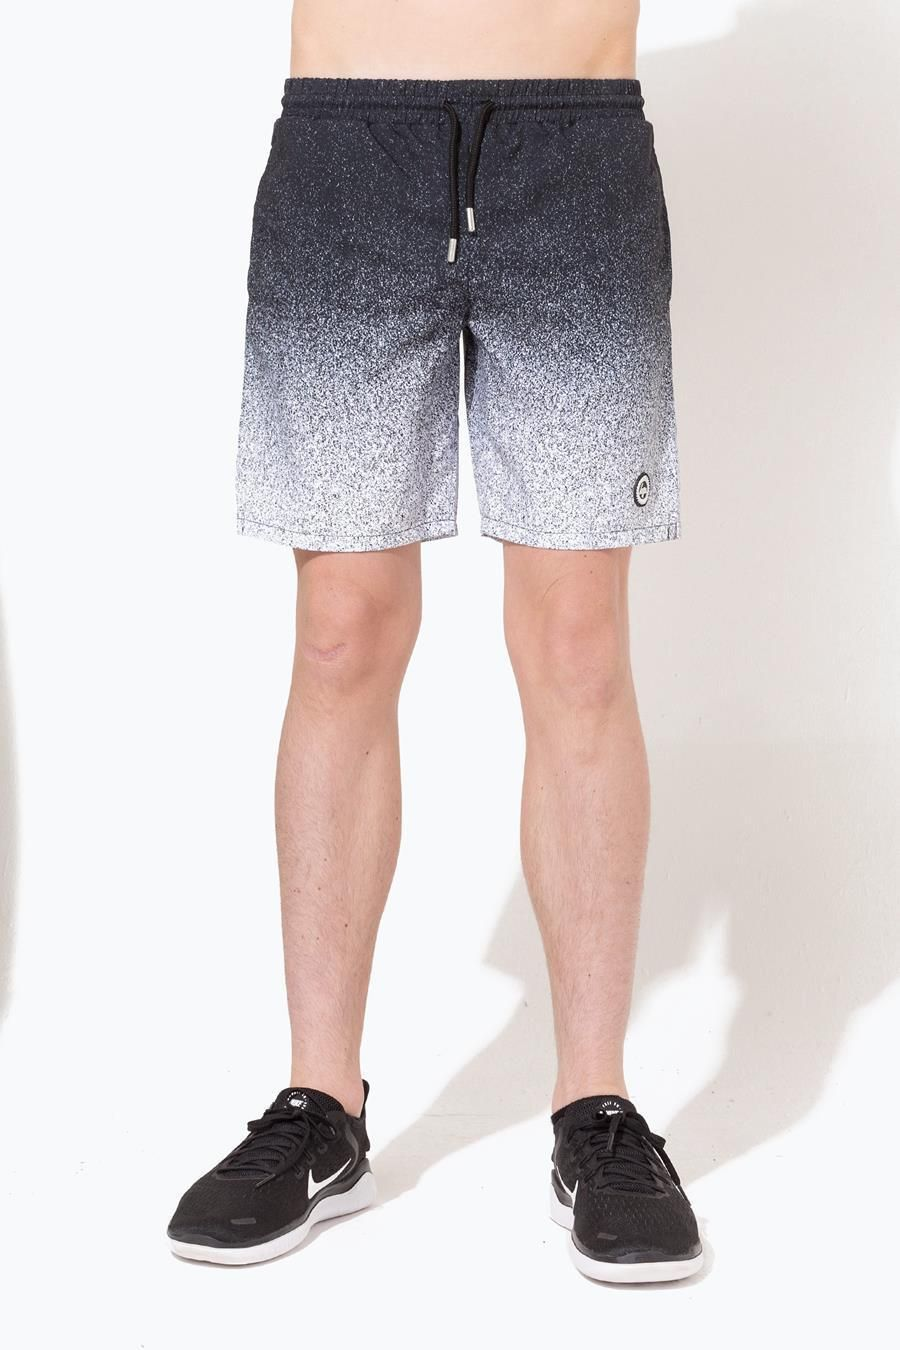 Hype Black Speckle Fade Kids Swim Shorts